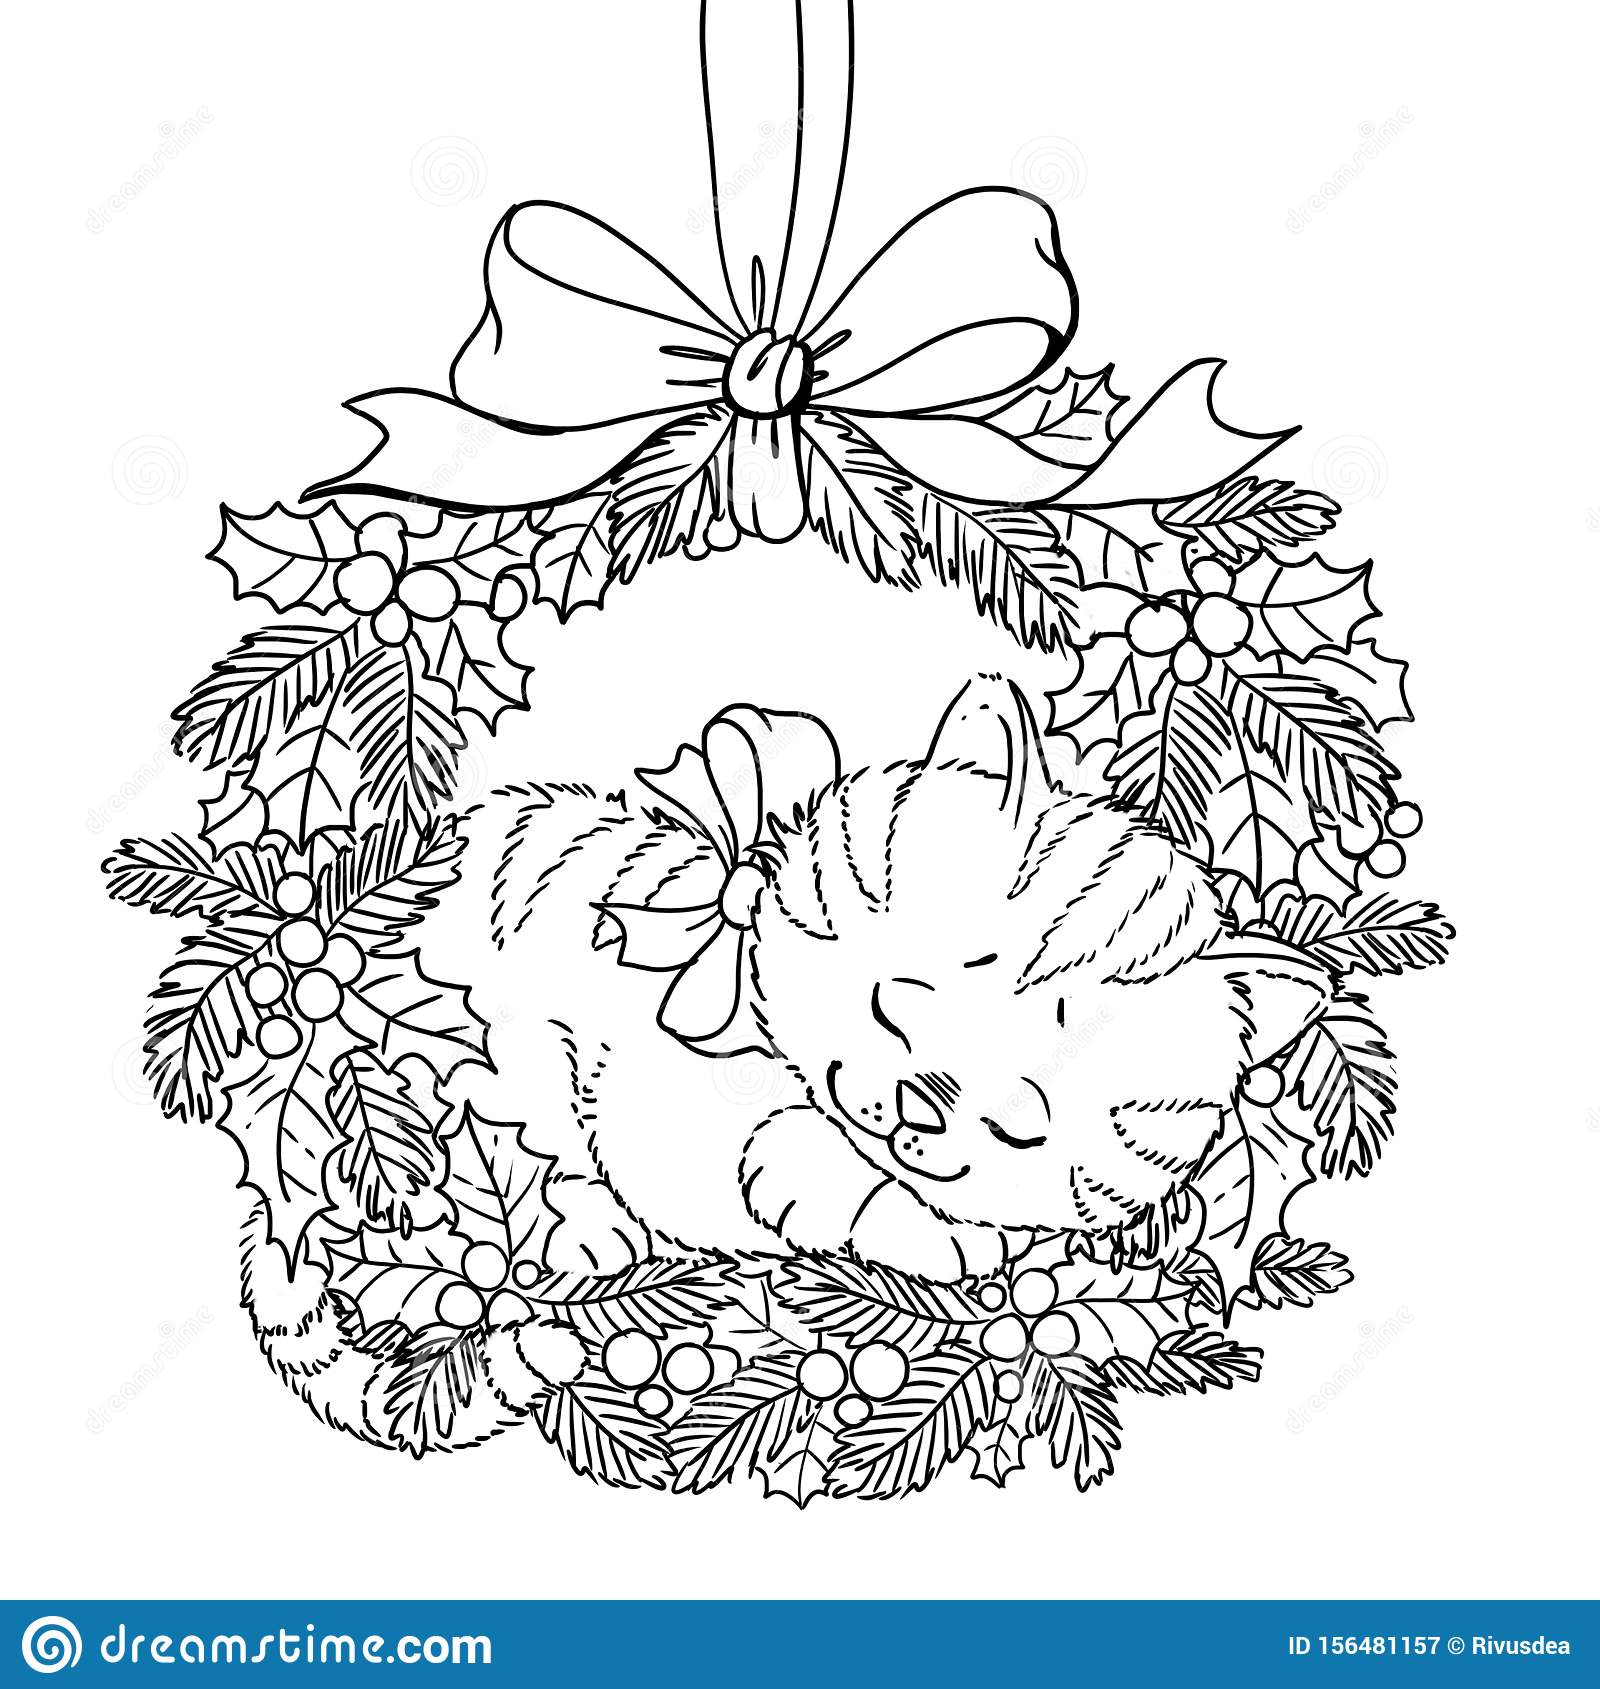 Ornament Wreath Coloring Page - Free Christmas Recipes, Coloring ... | 1689x1600